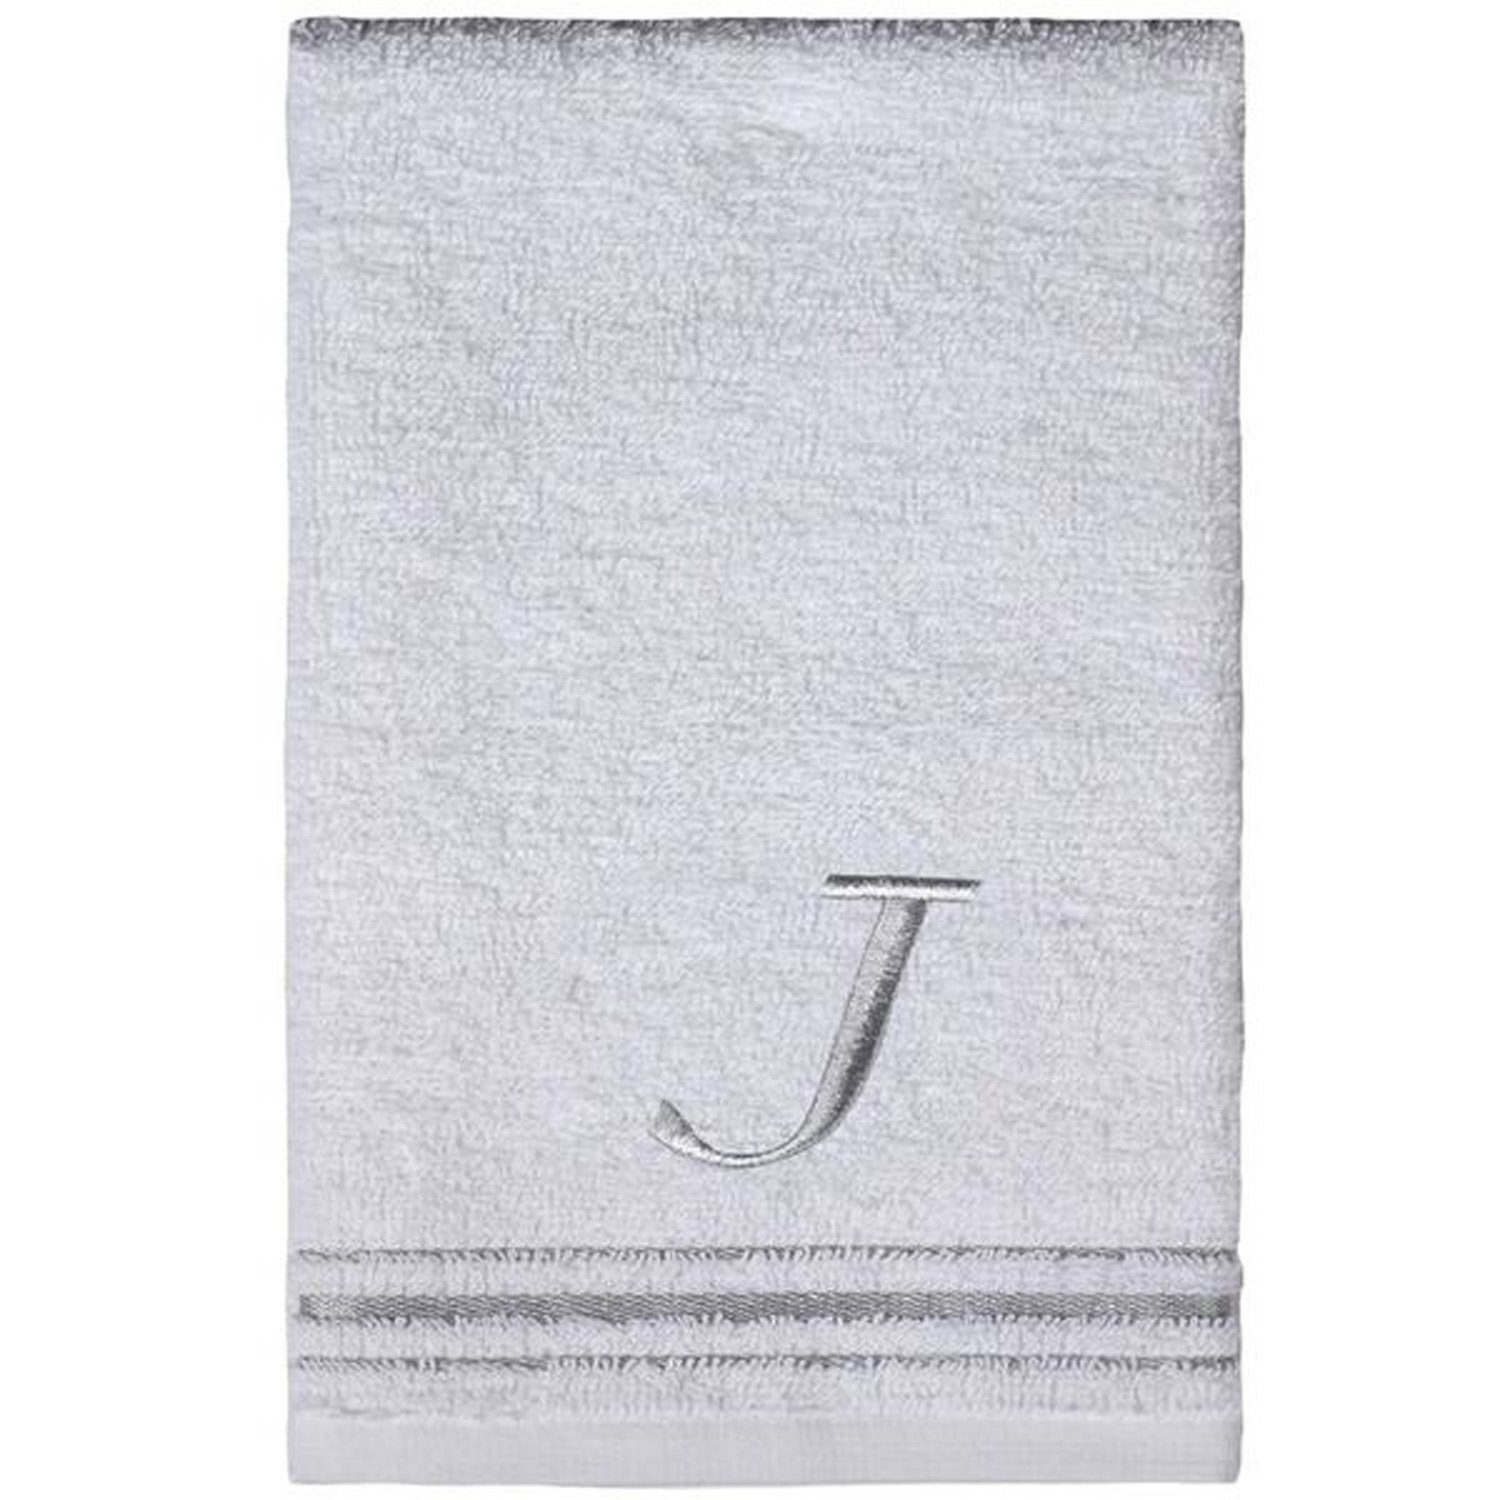 Saturday Knight Classic Script Monogram White Turkish Cotton Towel, 16-Inch by 25-Inch Hand Towel, Set of 2, Letter J by Saturday Knight